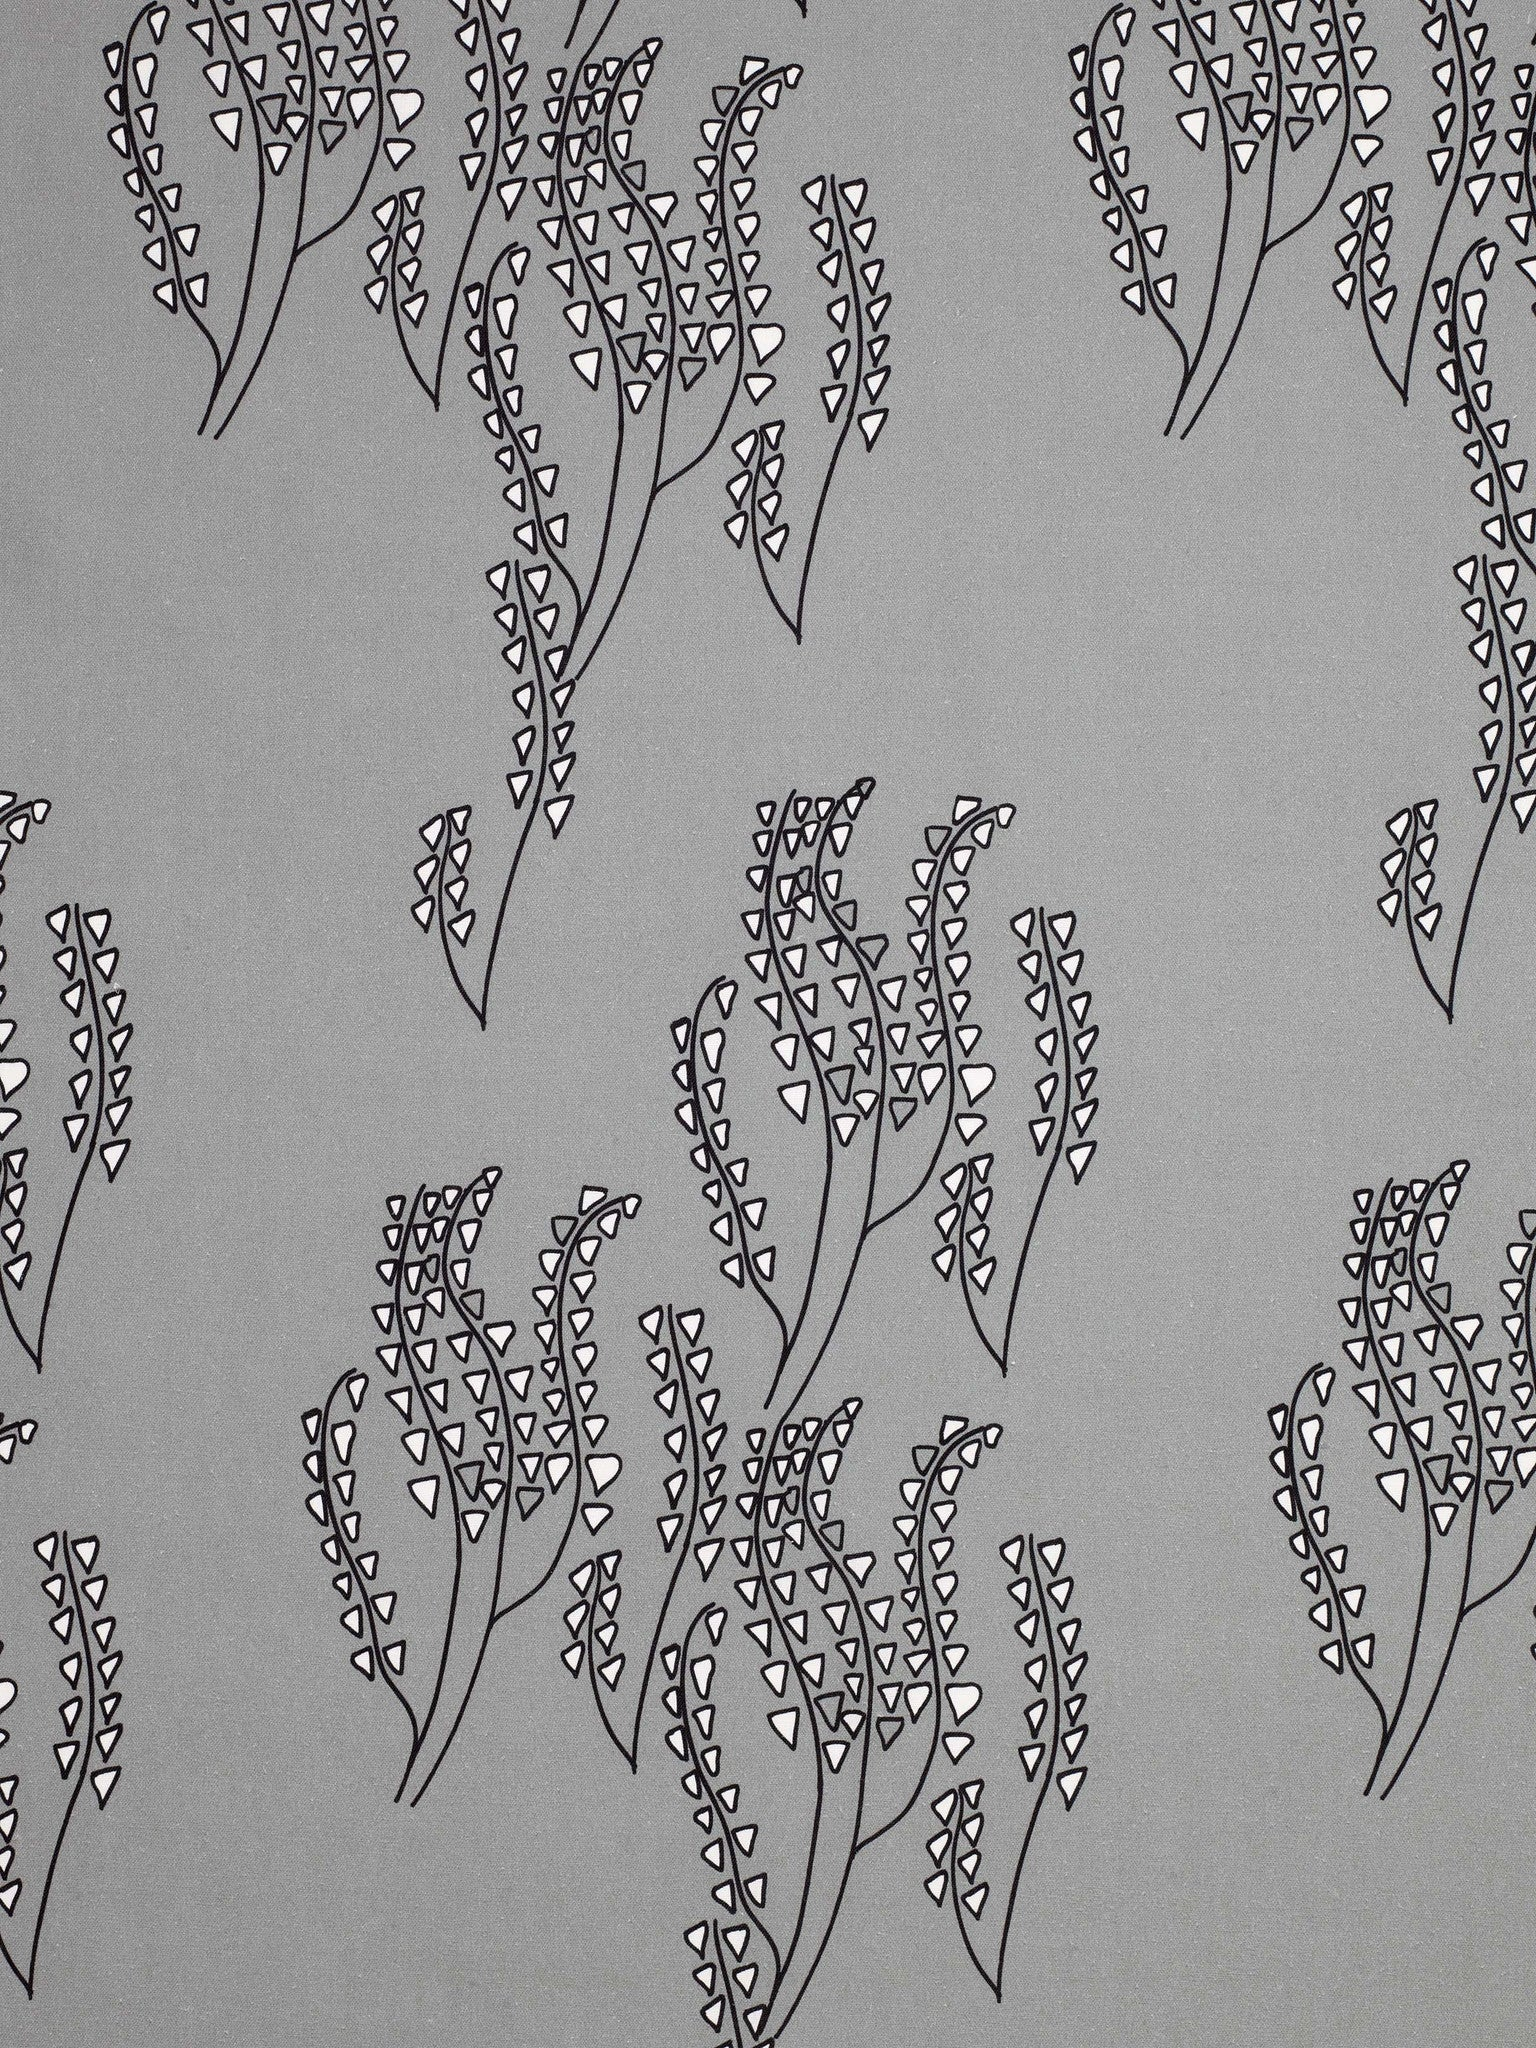 Yuma graphic Wild grass pattern cotton linen Home decor interior Fabric by the yard or meter for curtains, blinds or upholstery - Dove Grey - black - ships from Canada (USA)